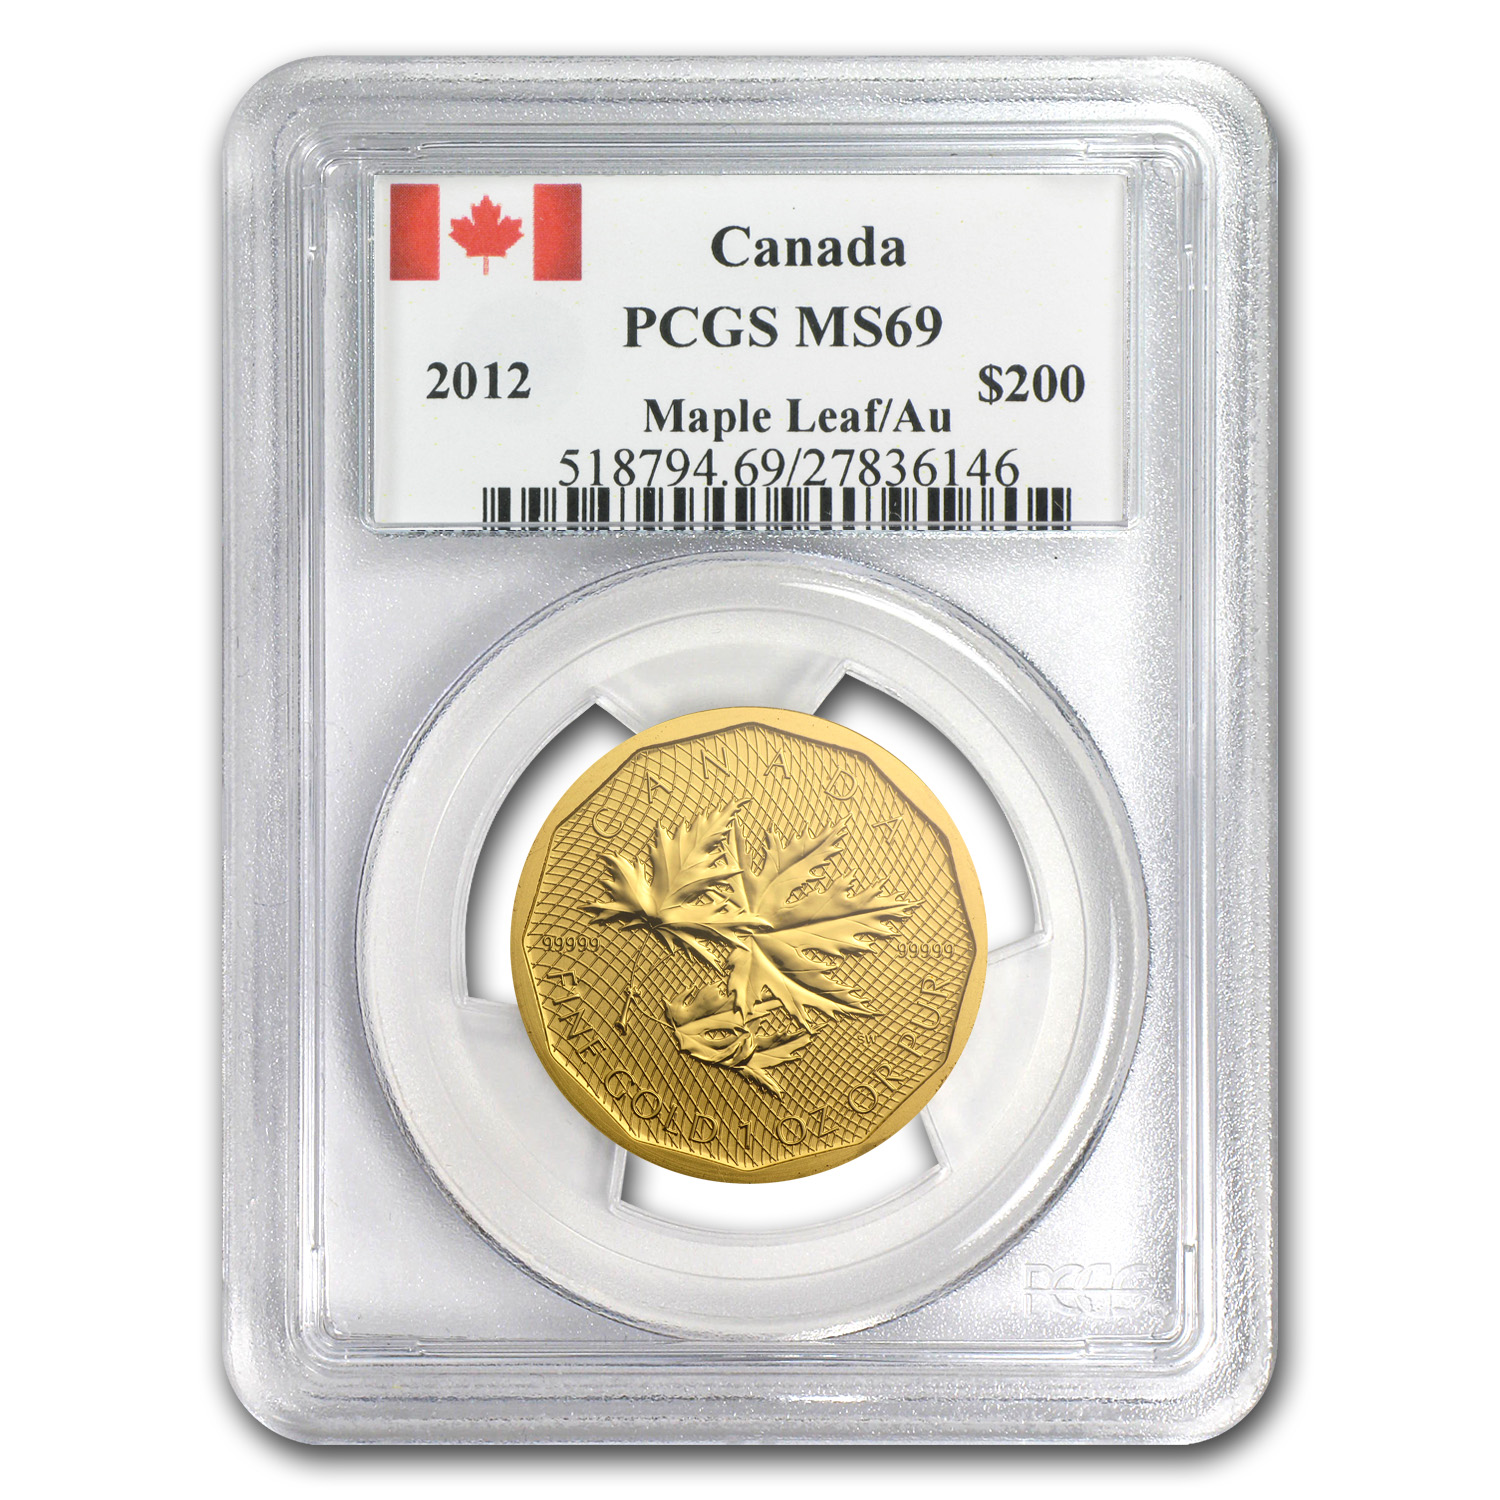 2012 Canada 1 oz Gold Maple Leaf .99999 MS-69 PCGS